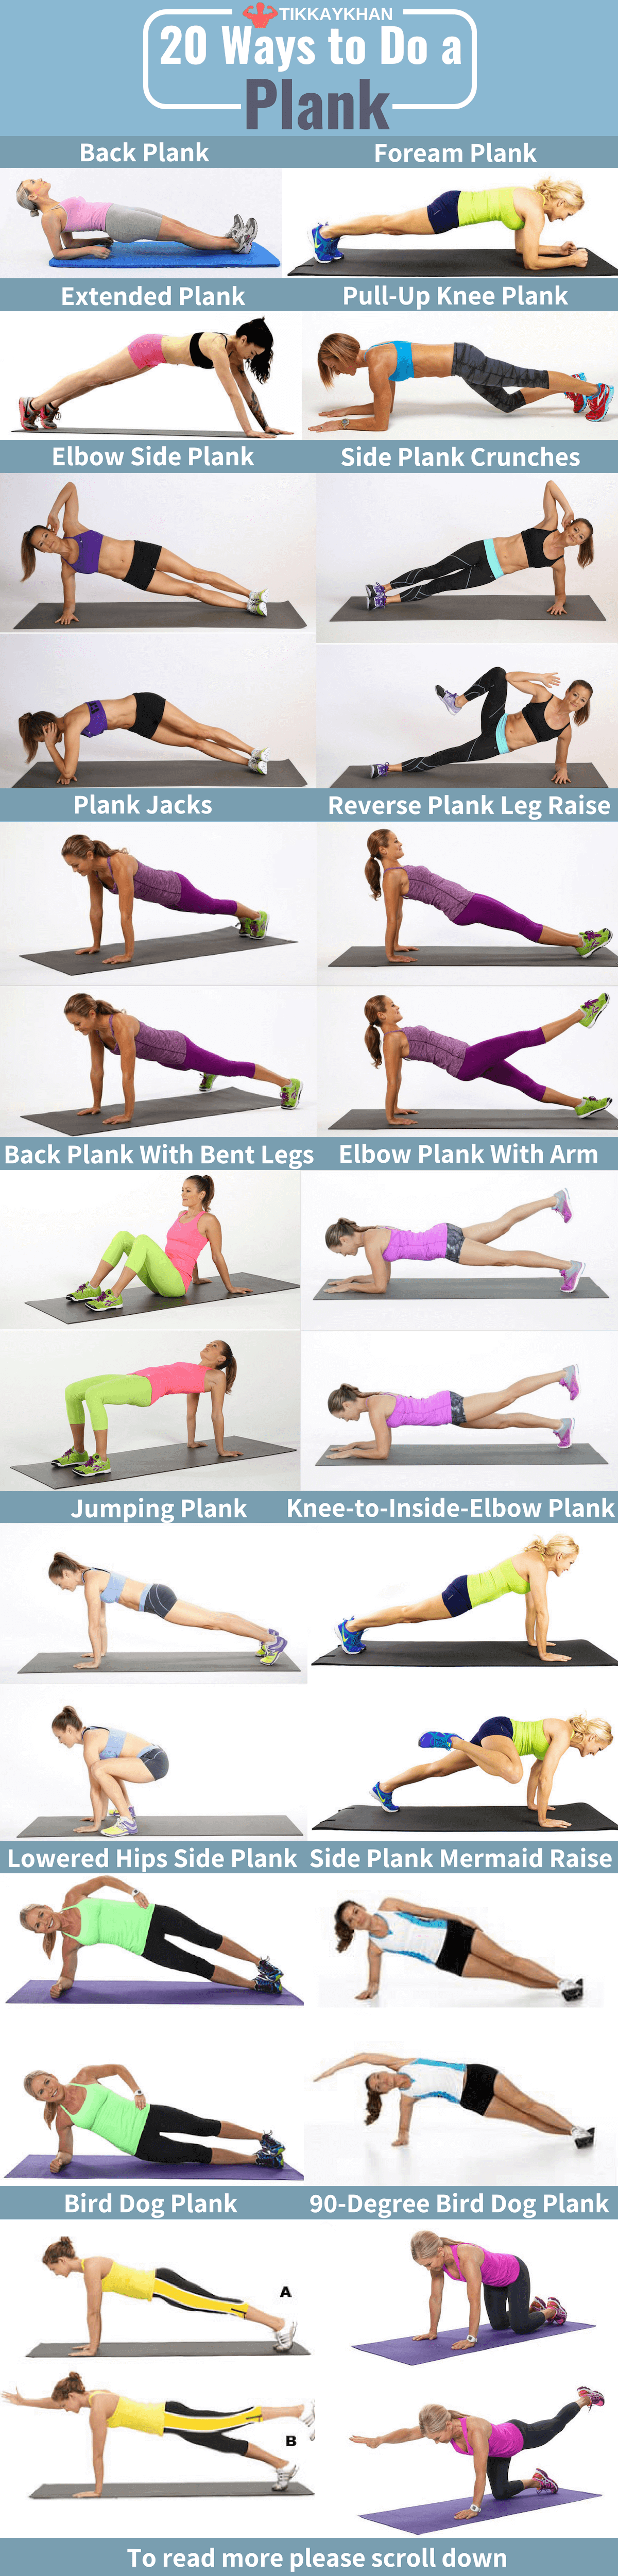 20 Ways to do a Plank Infographic